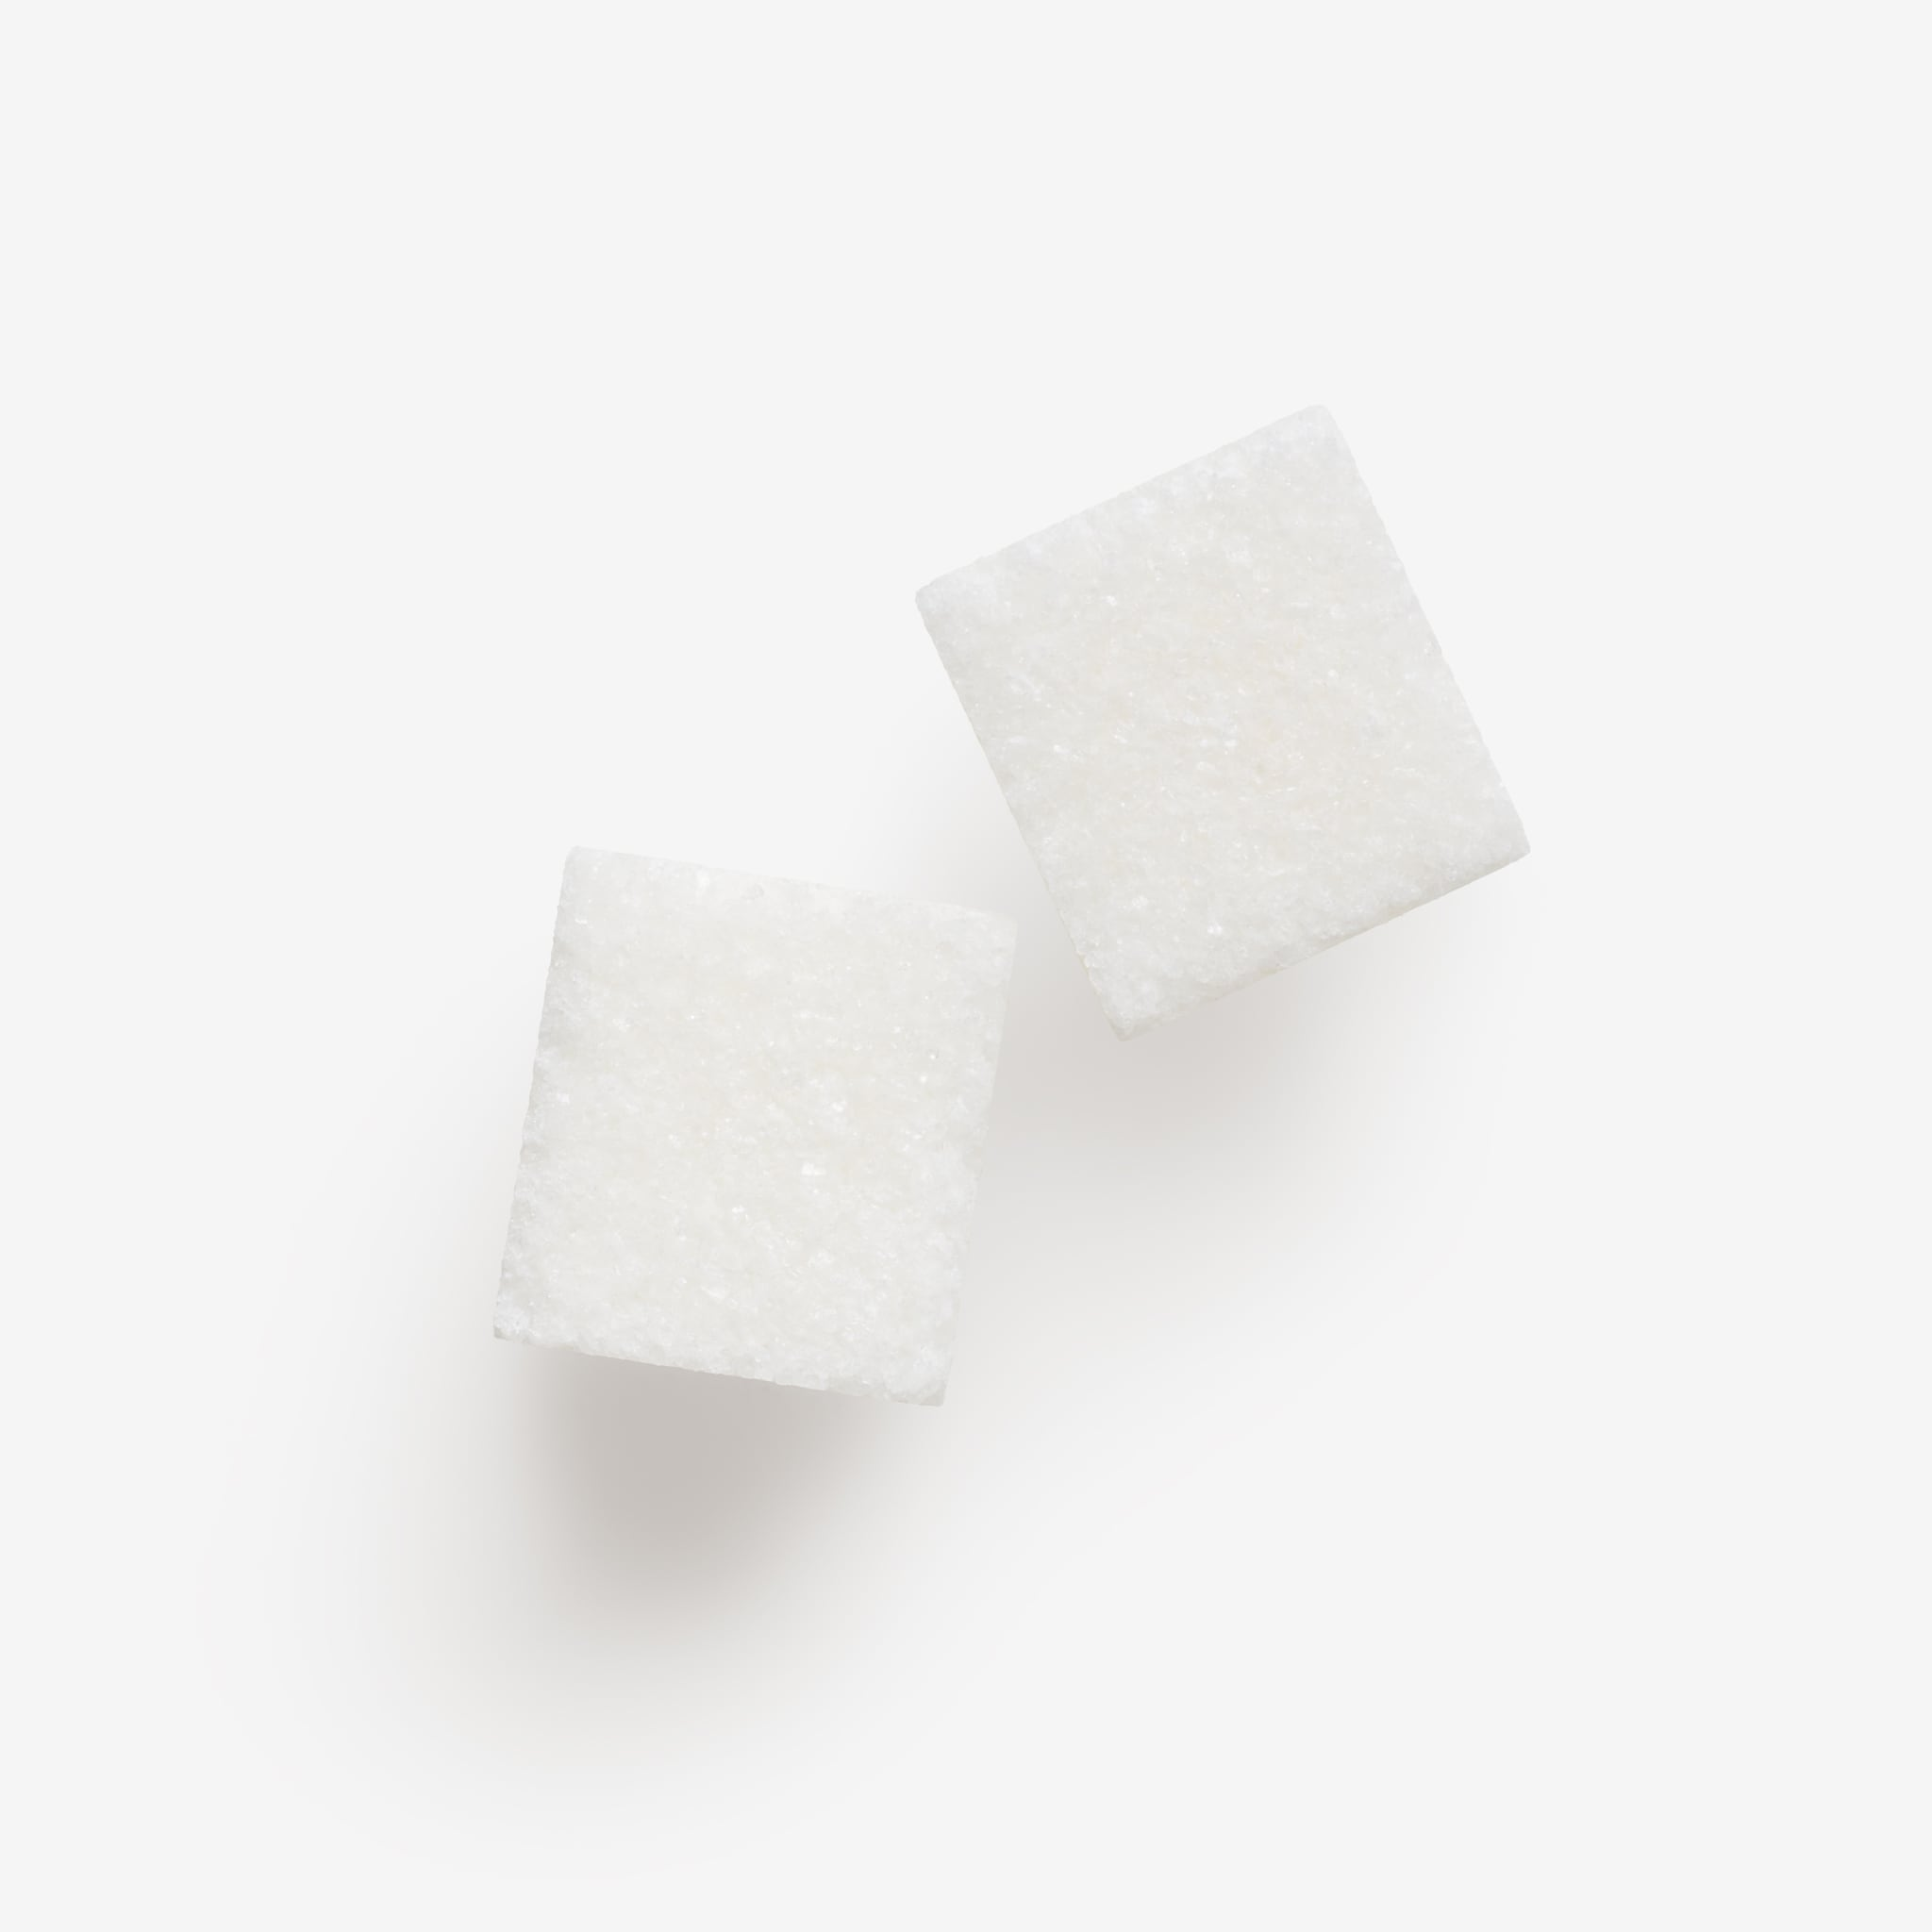 Clean Isolated PSD image of Sugar on transparent background with separated shadow